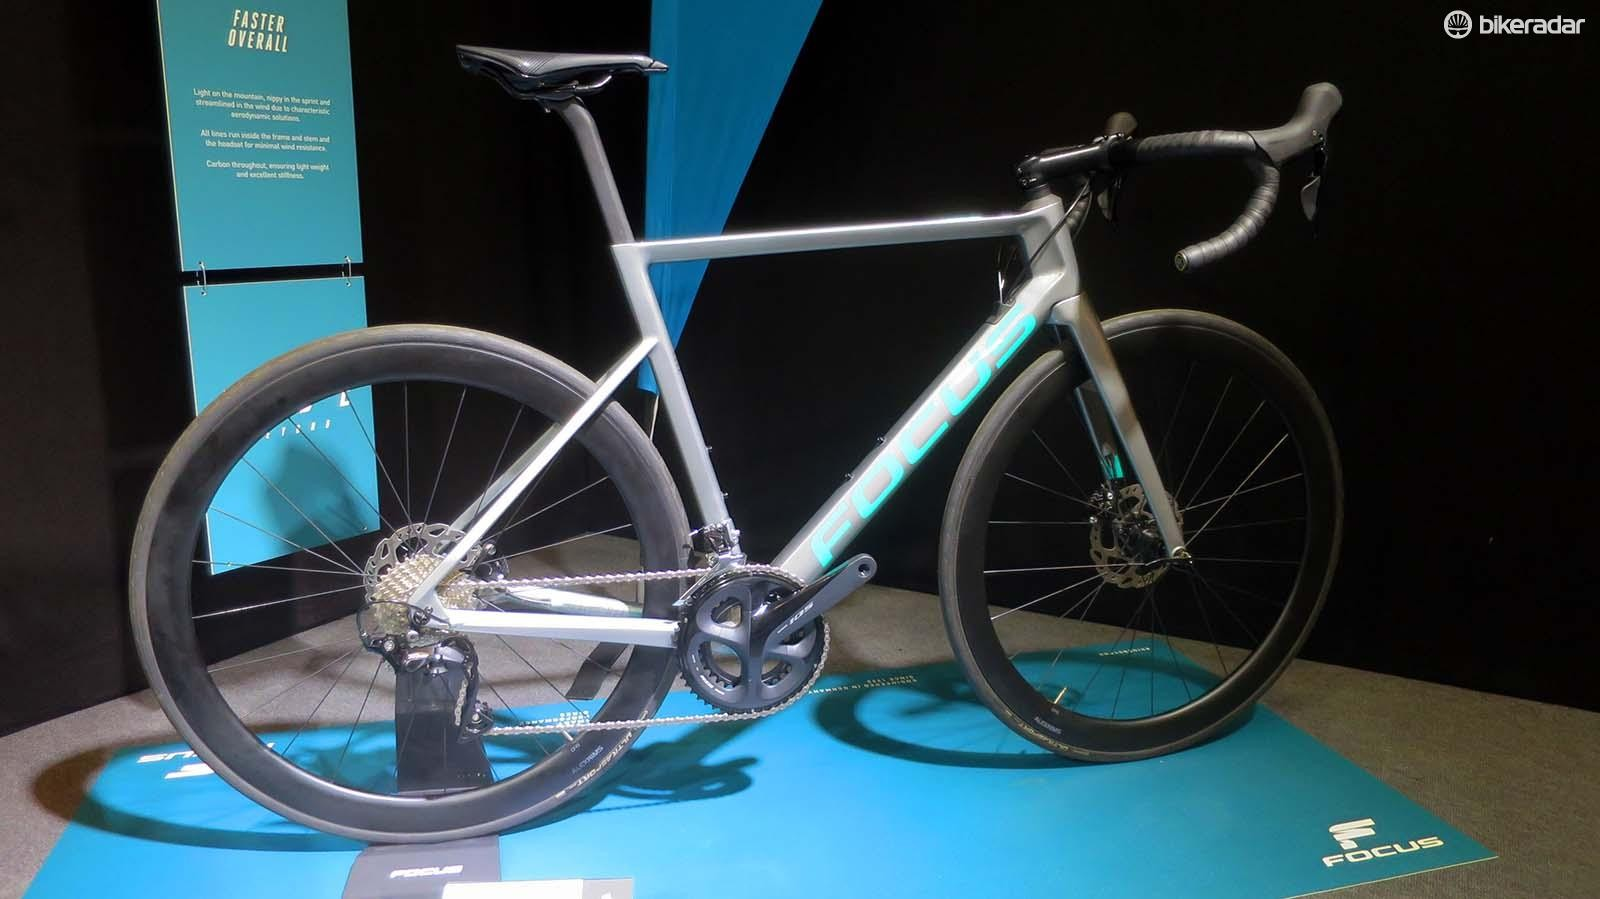 Entry into the Max range starts with this 8.7 at £2,649 with Alex carbon wheels and Shimano's latest 105